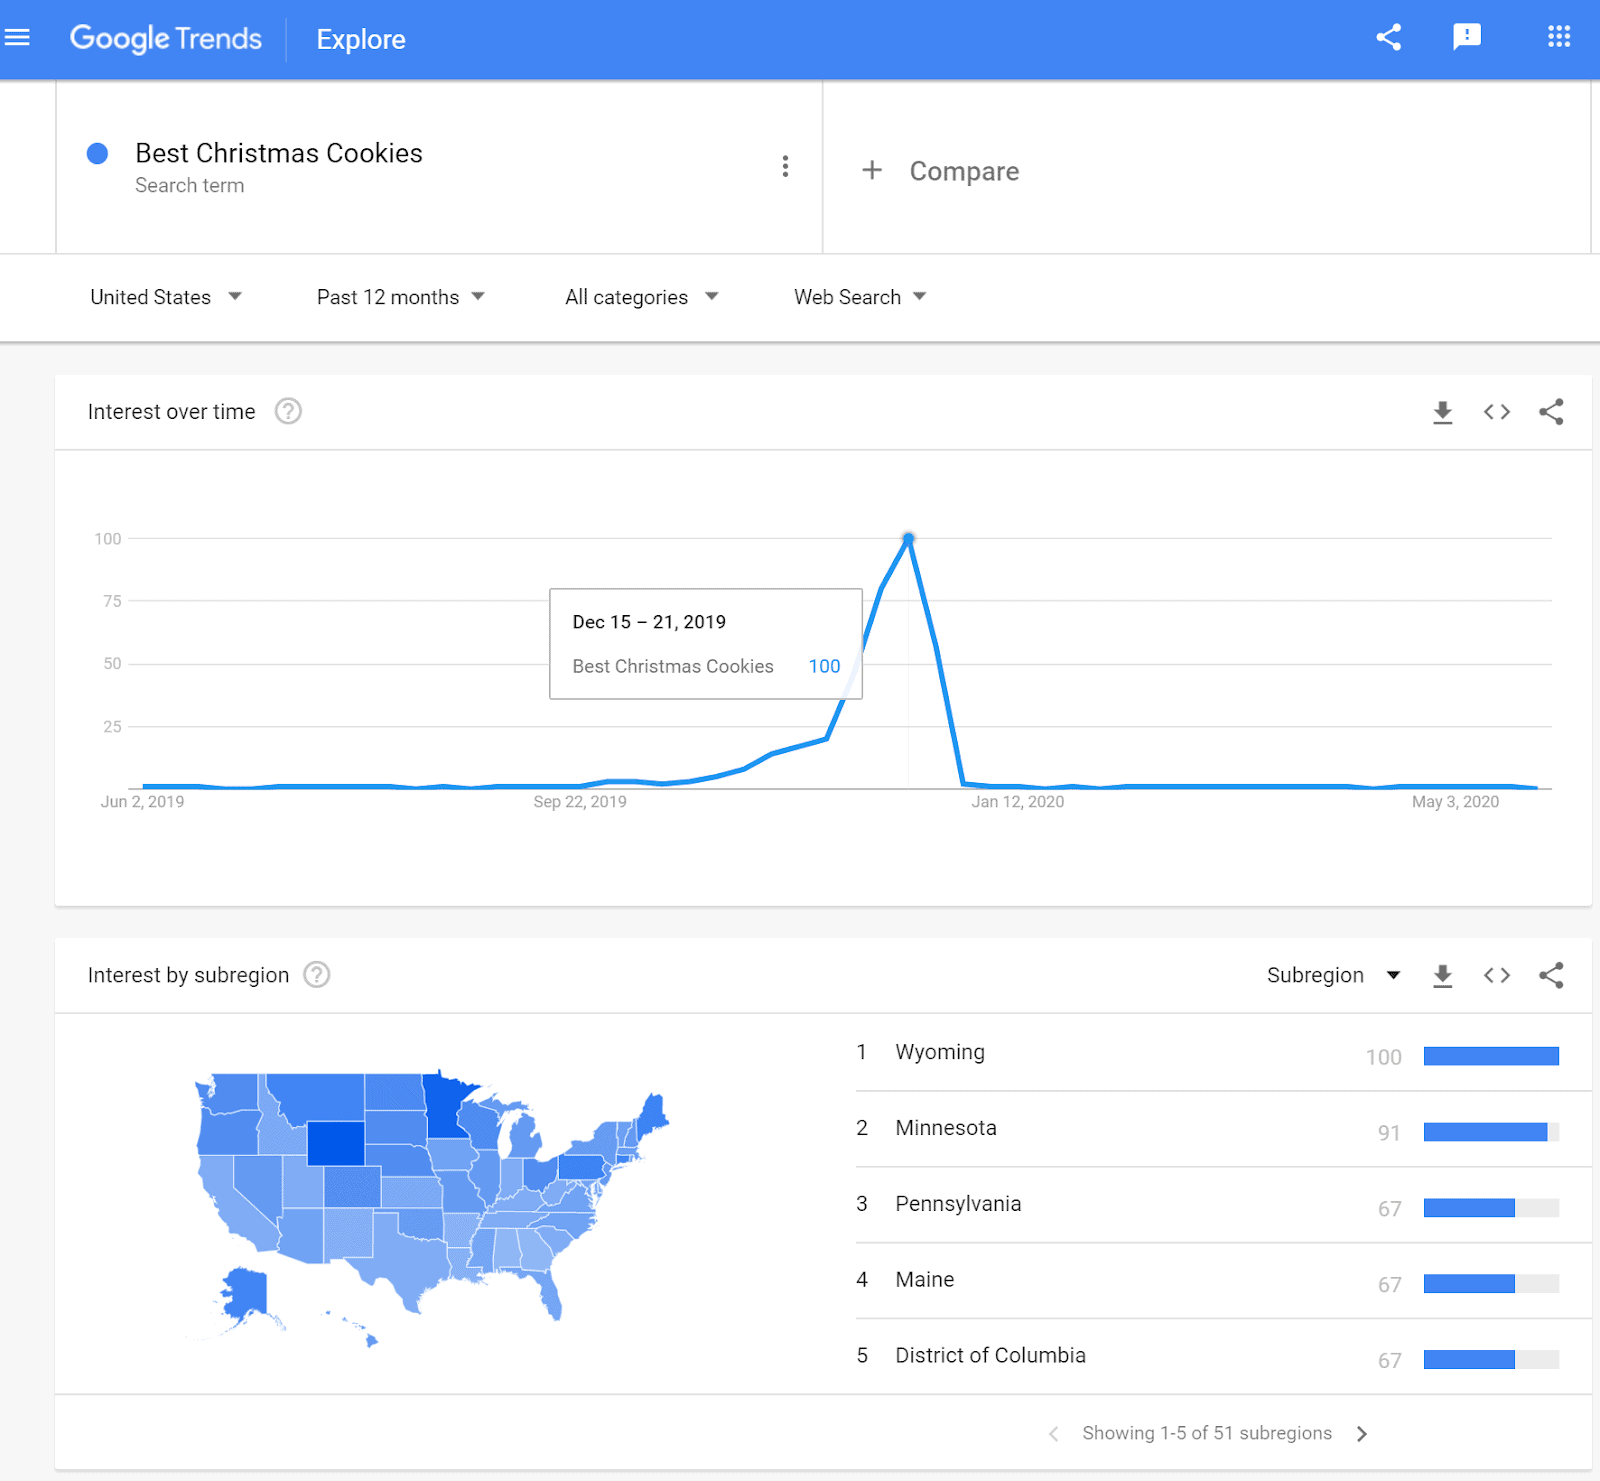 Google Trends explore page about Best Christmas Cookies